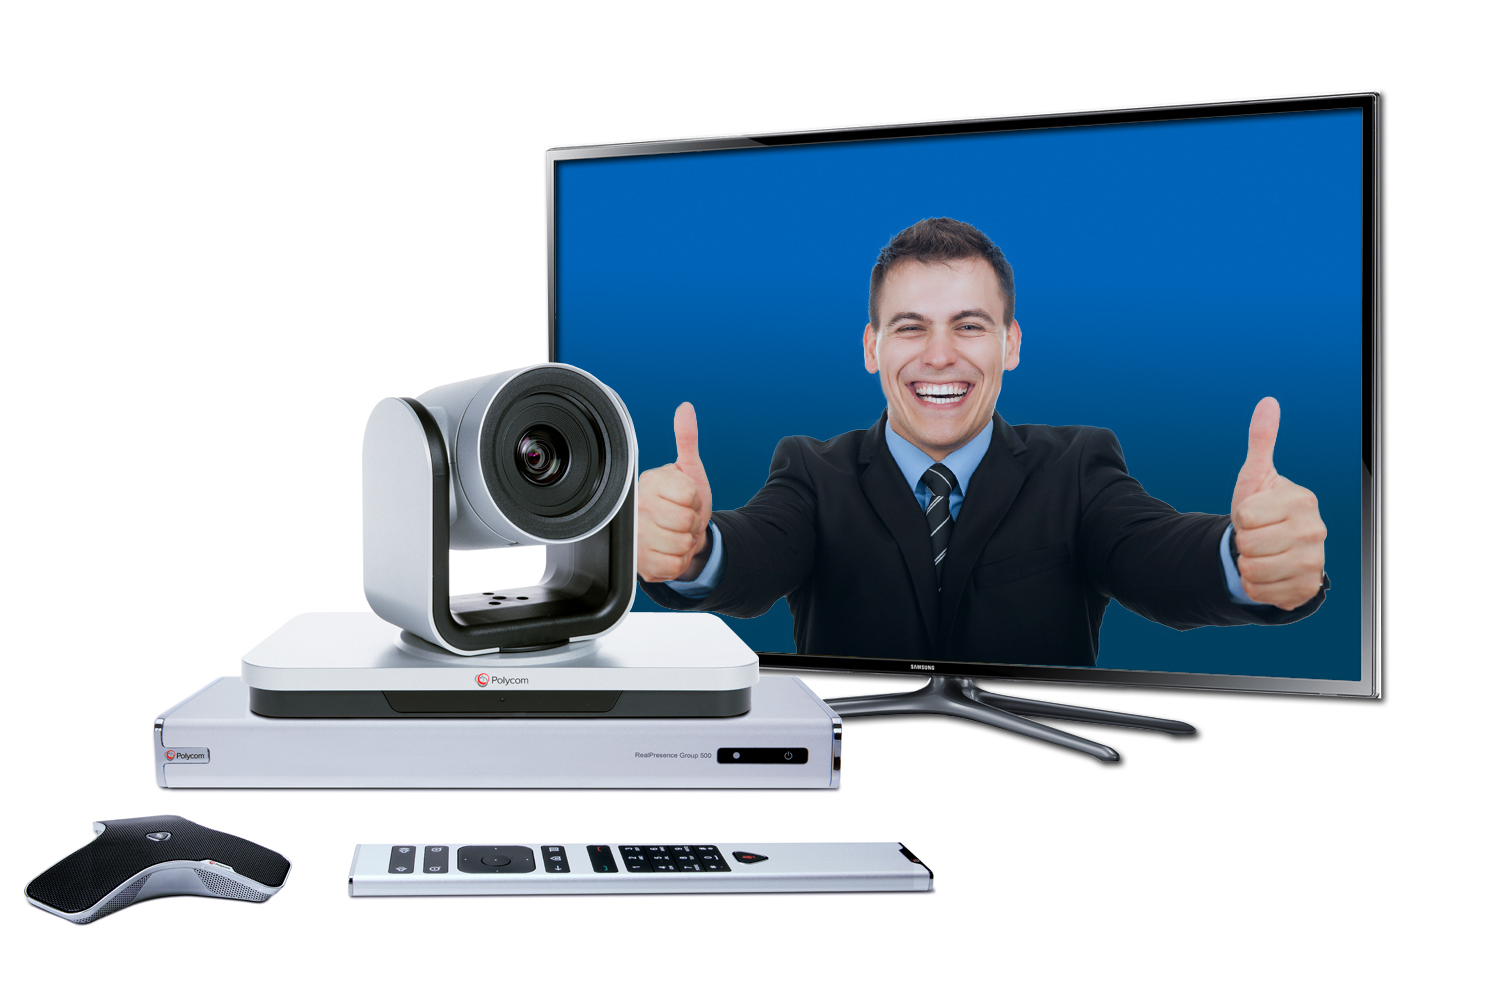 Polycom Group 500 Video Conferencing System Promotion